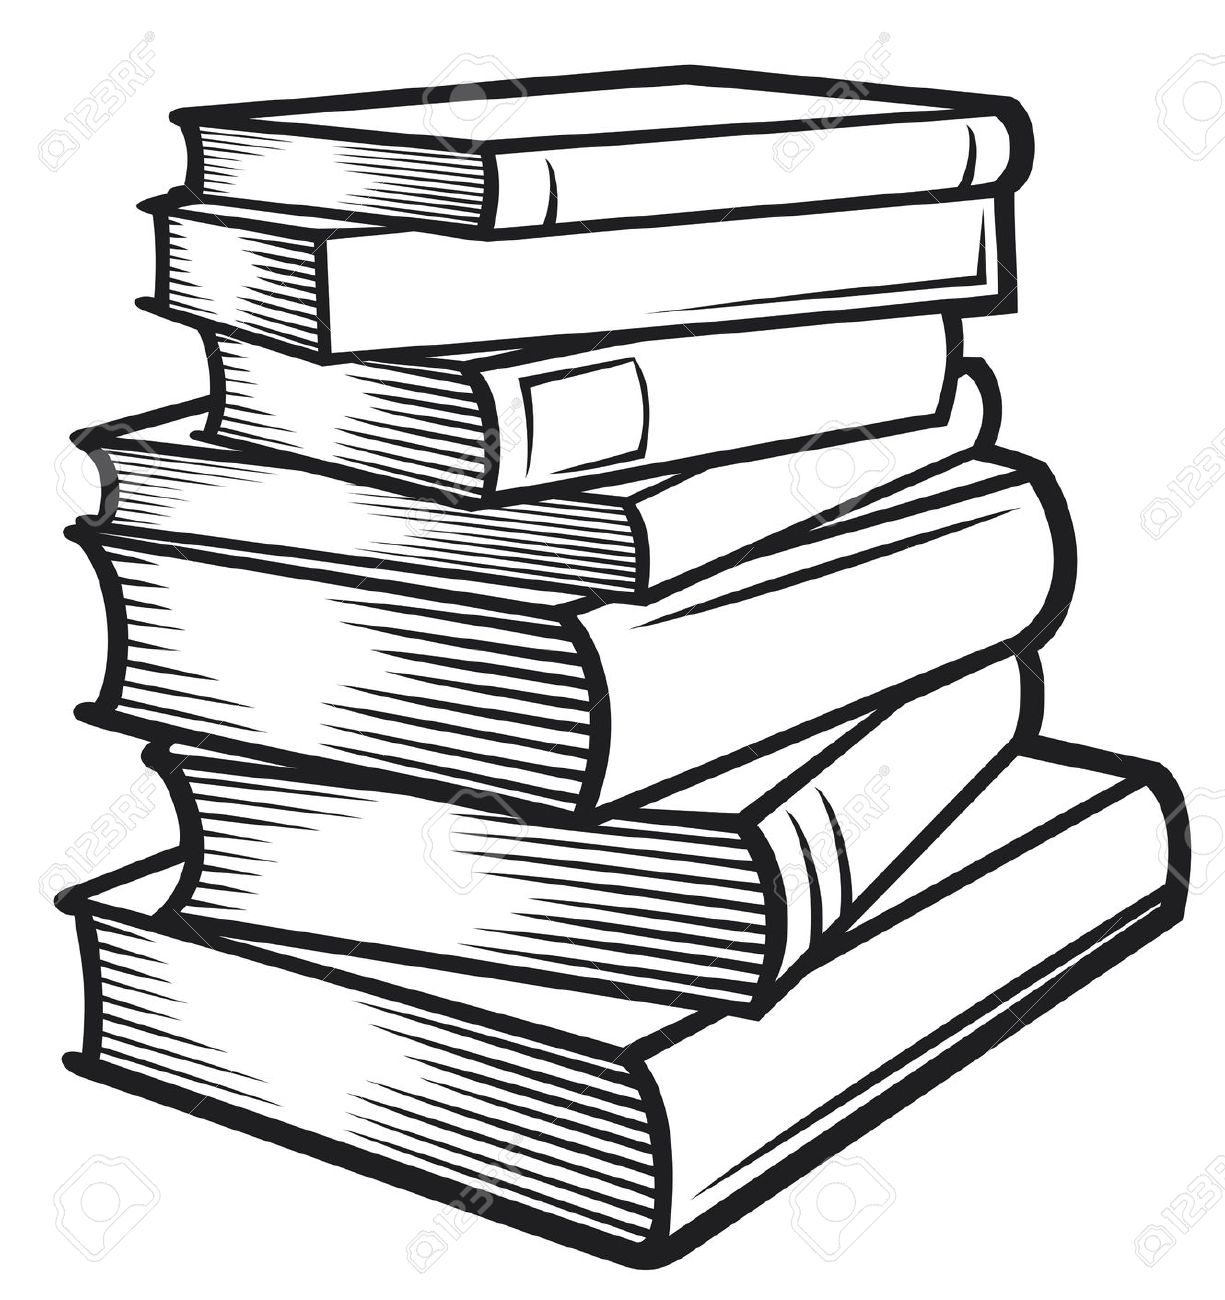 1225x1300 Stack Of Books Clipart Books, Journaling